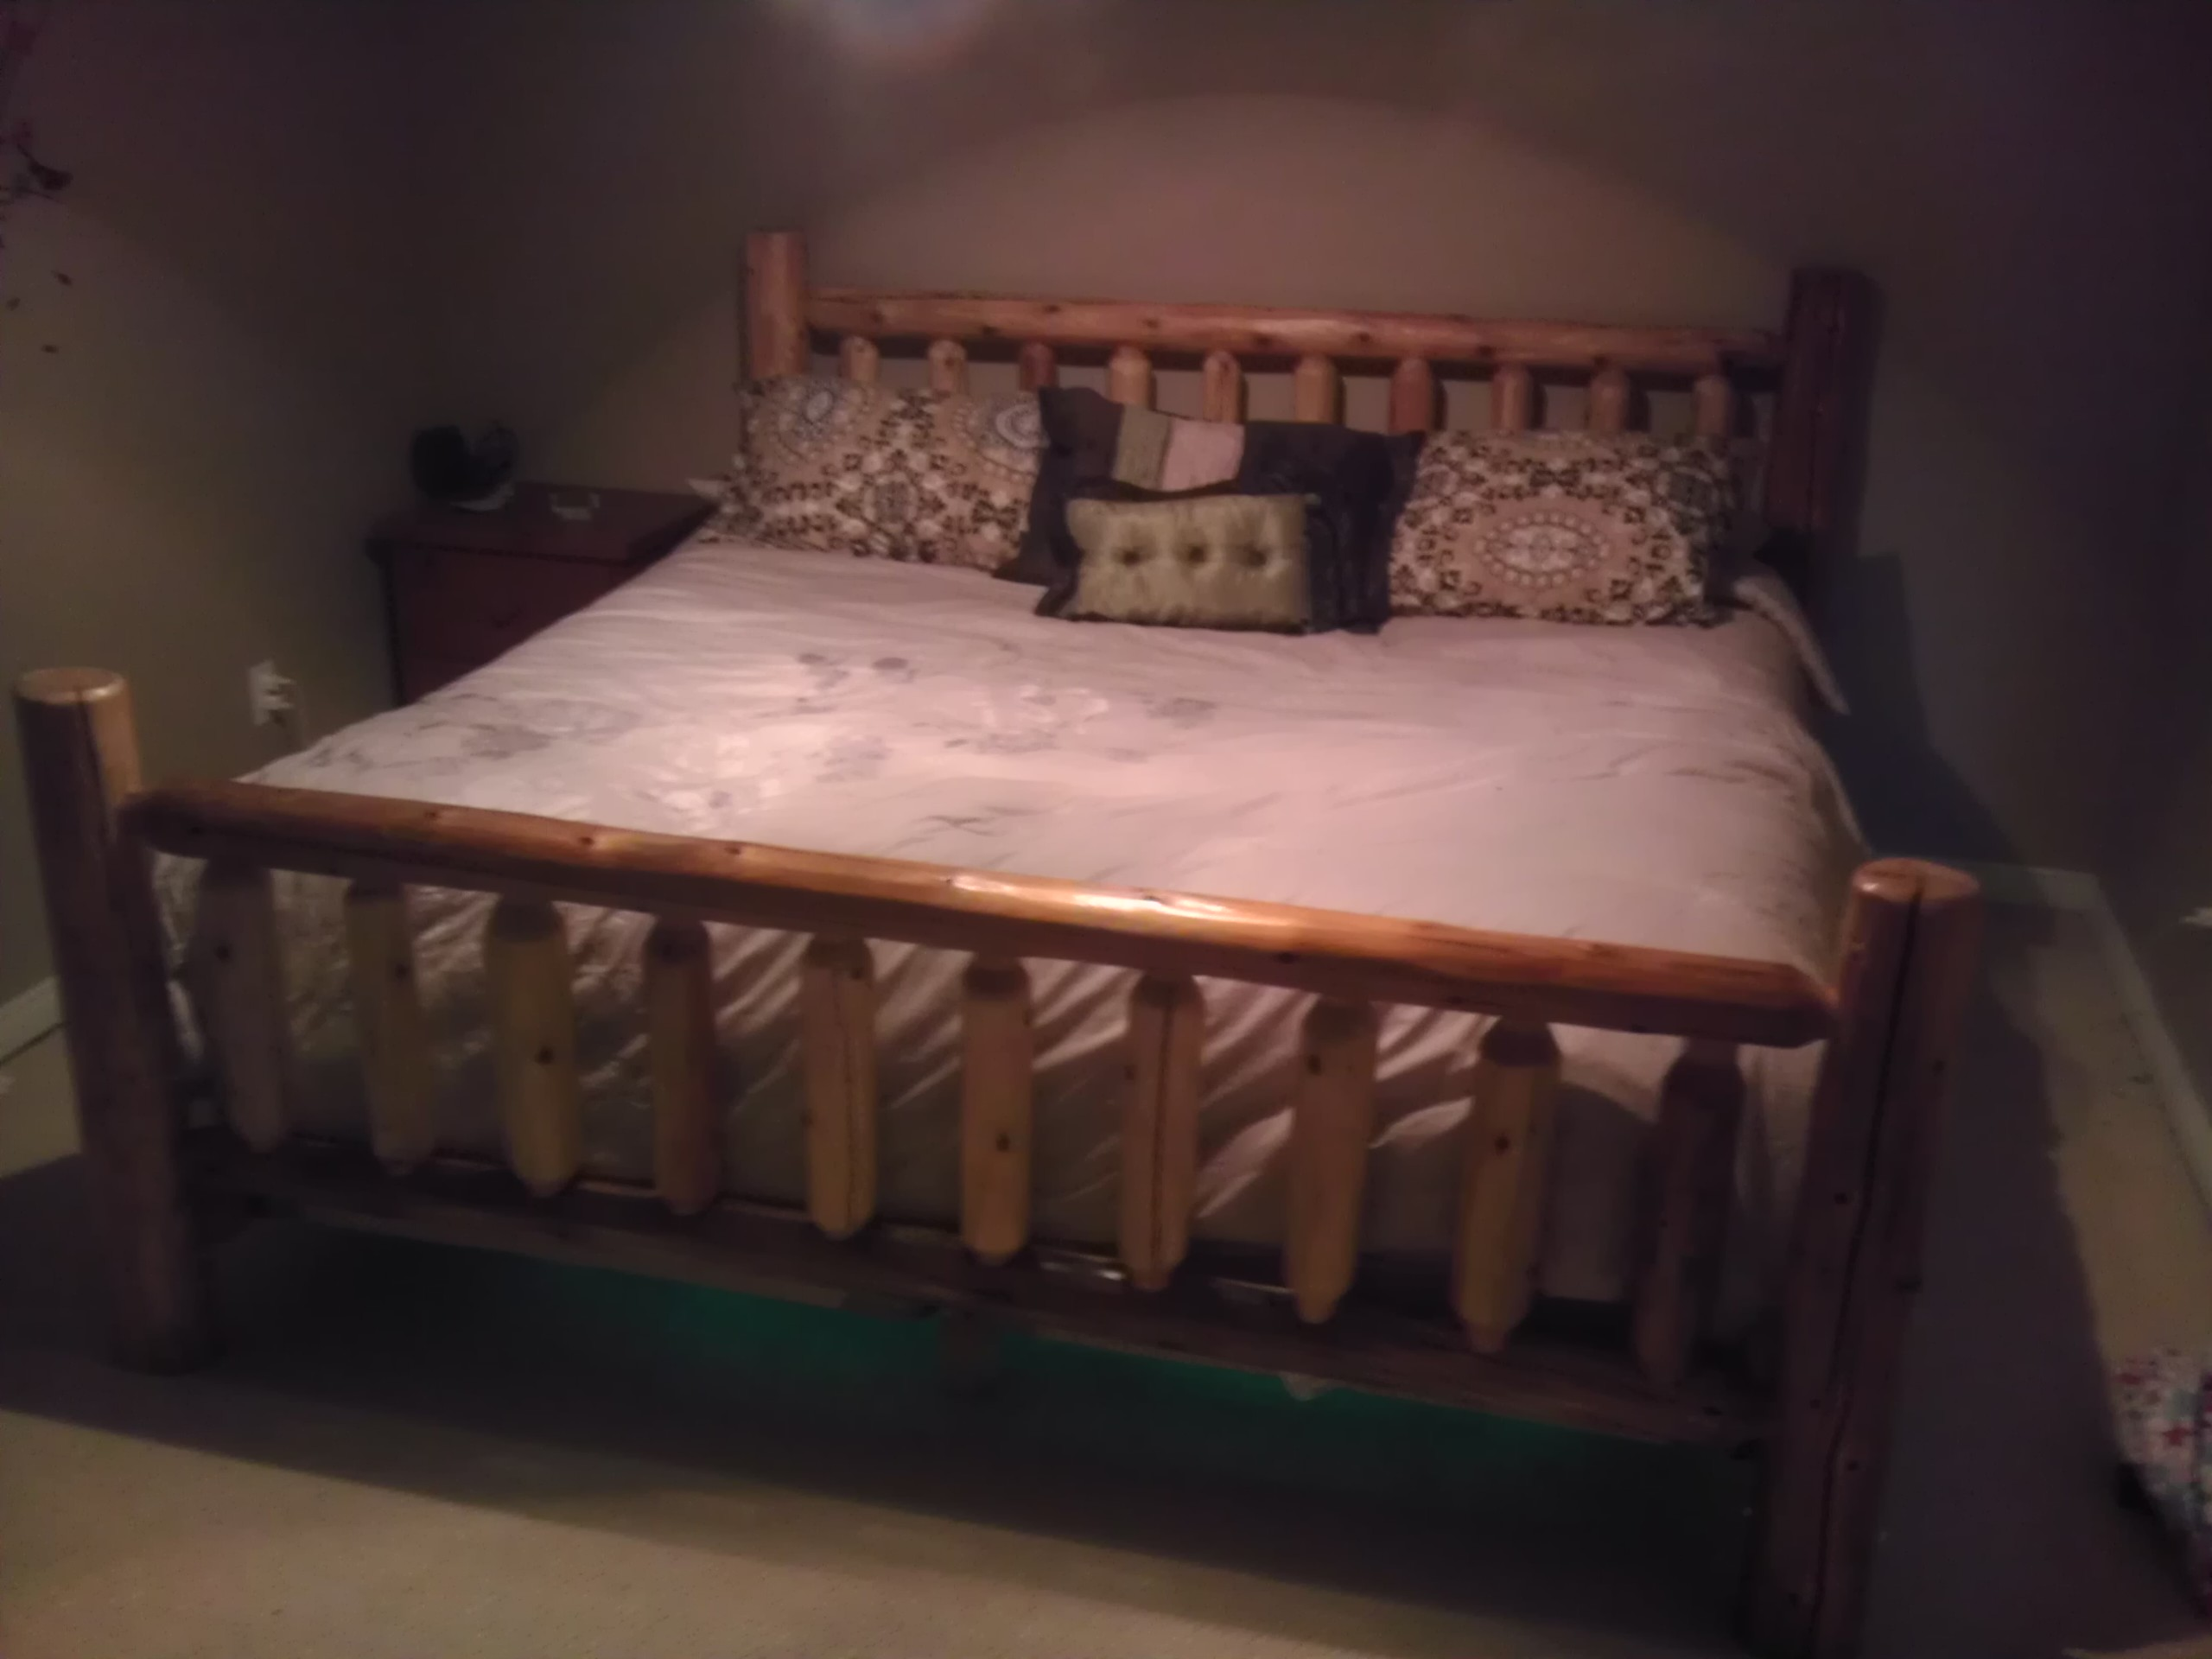 custommade made bed by rustic beds woodshop handmade custom the pet com log therusticwoodshop